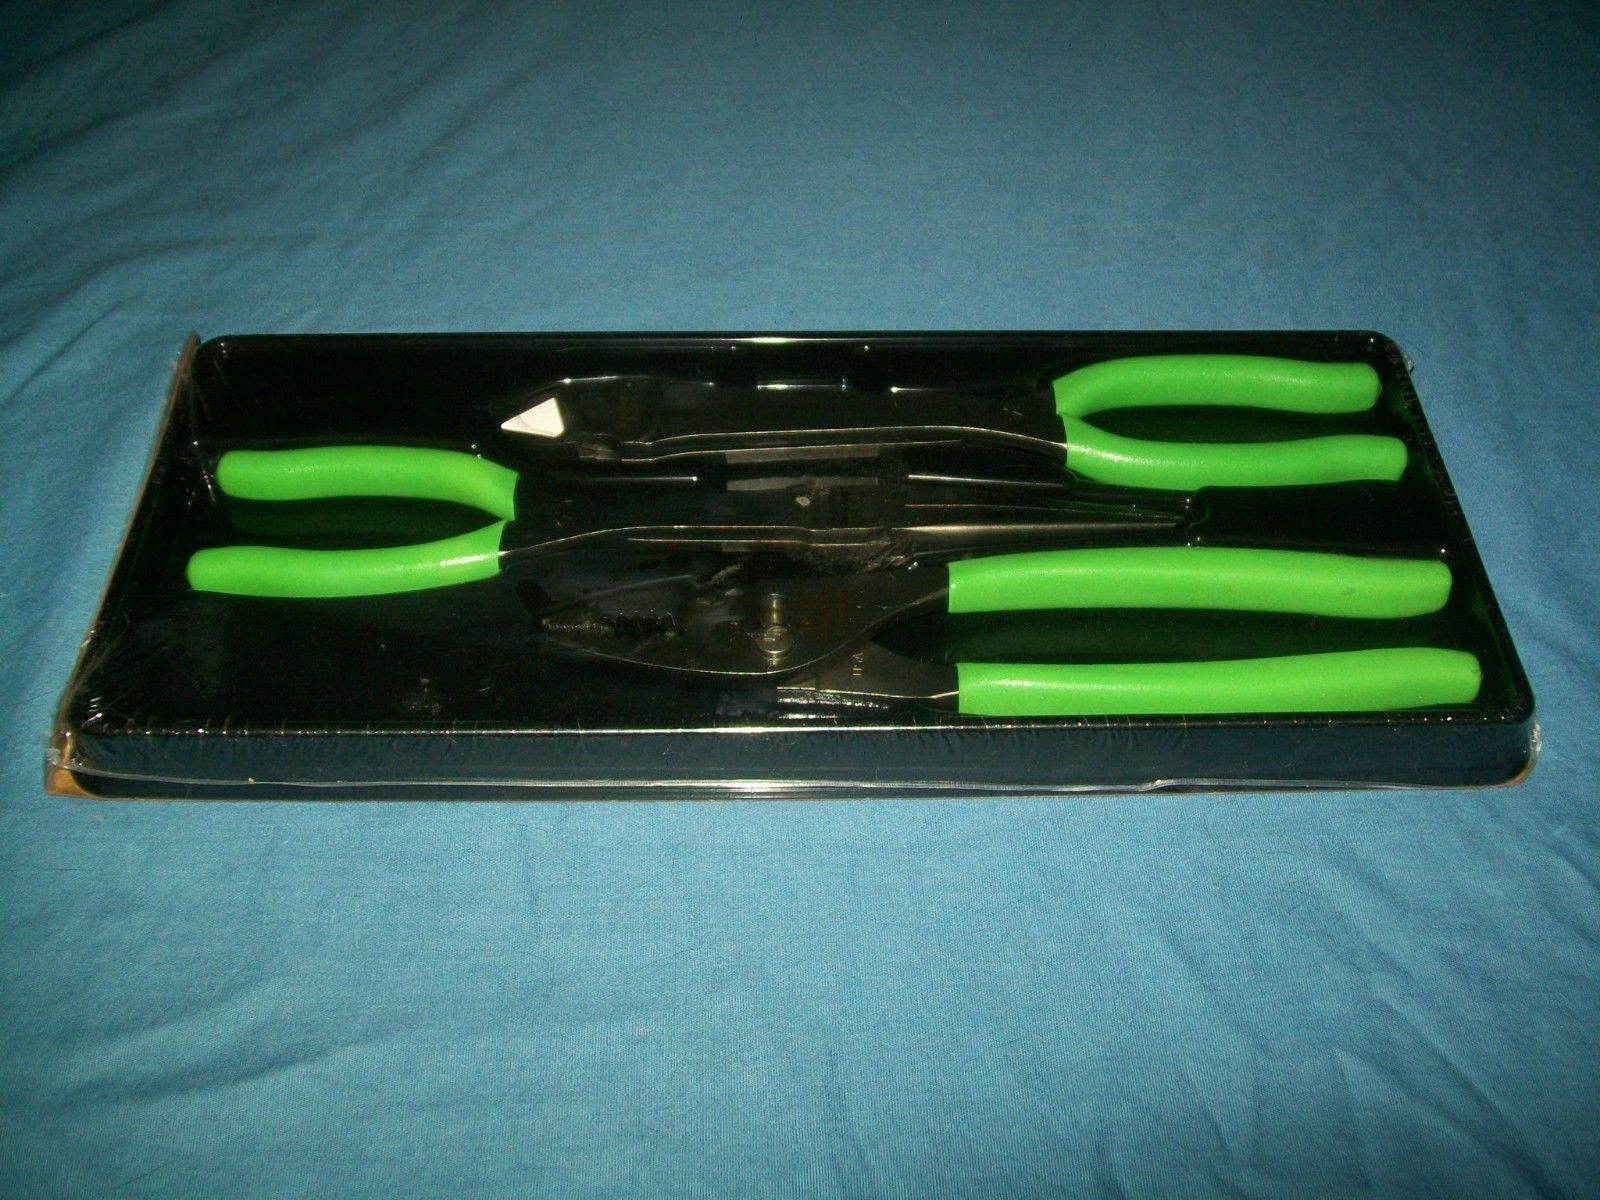 NEW Snap-on™ 3pc HeavyDuty Pliers Set includes PL330ACF Green Vinyl Grip SEALed